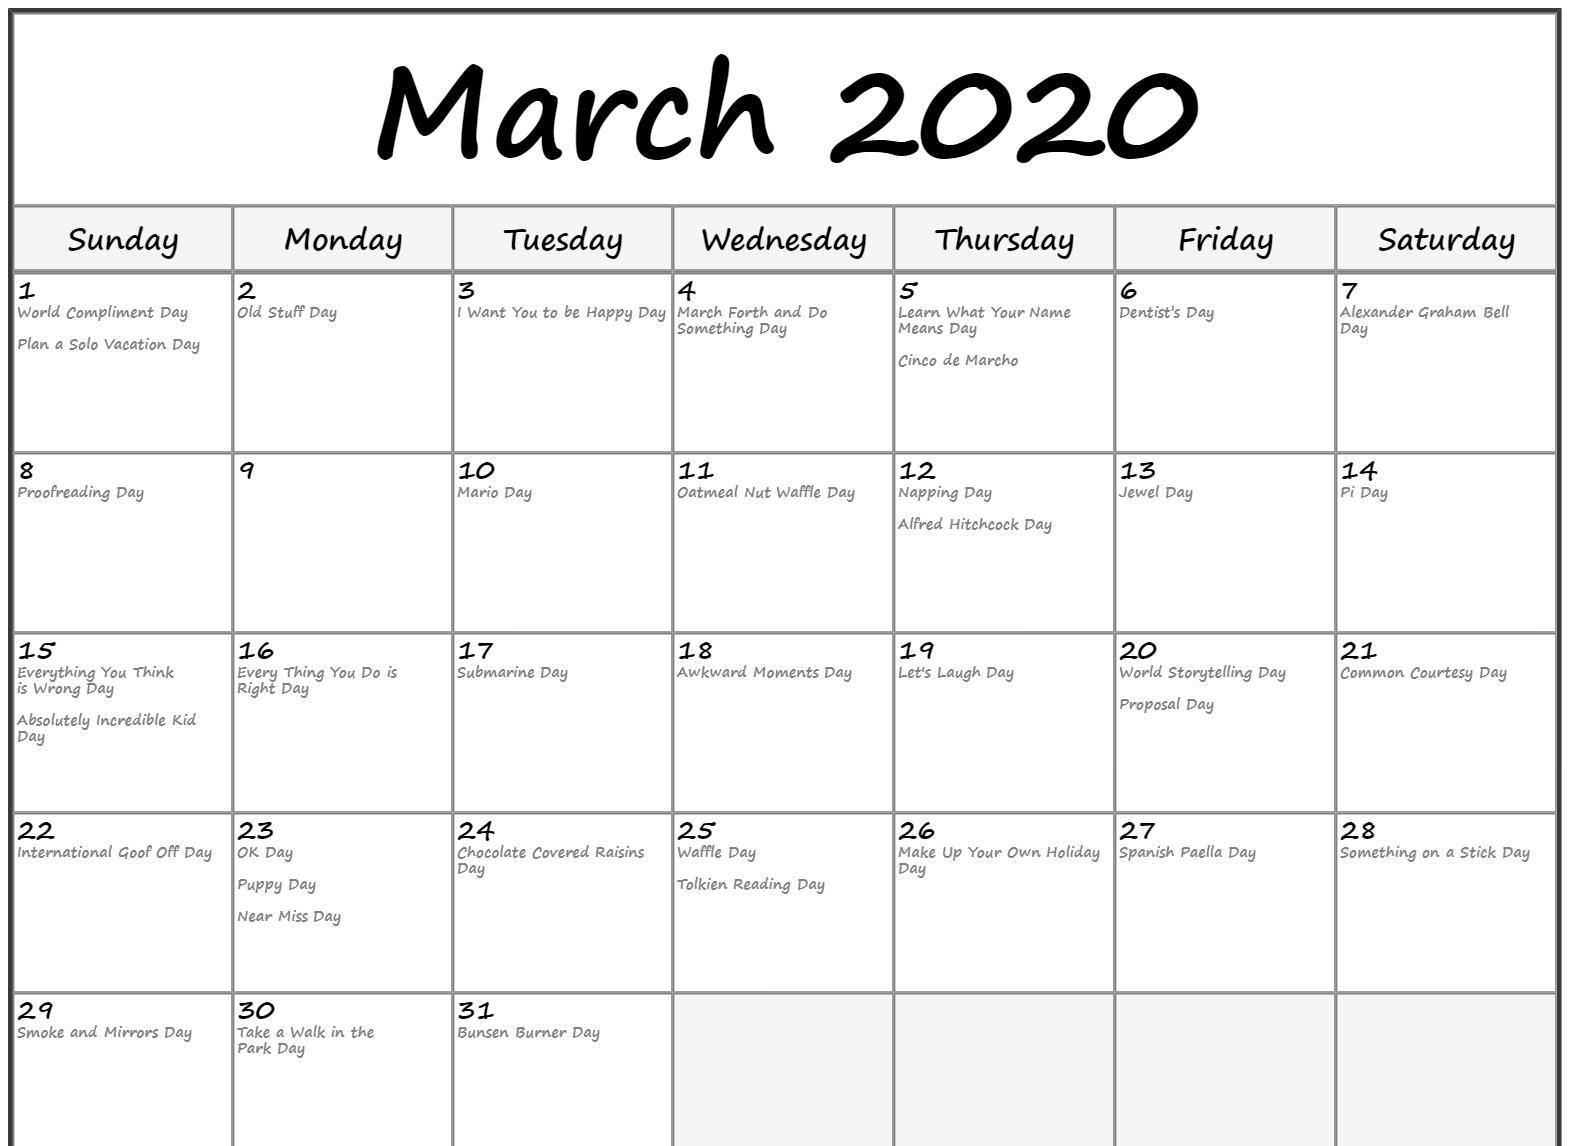 March 2020 Calendar With Holidays UK